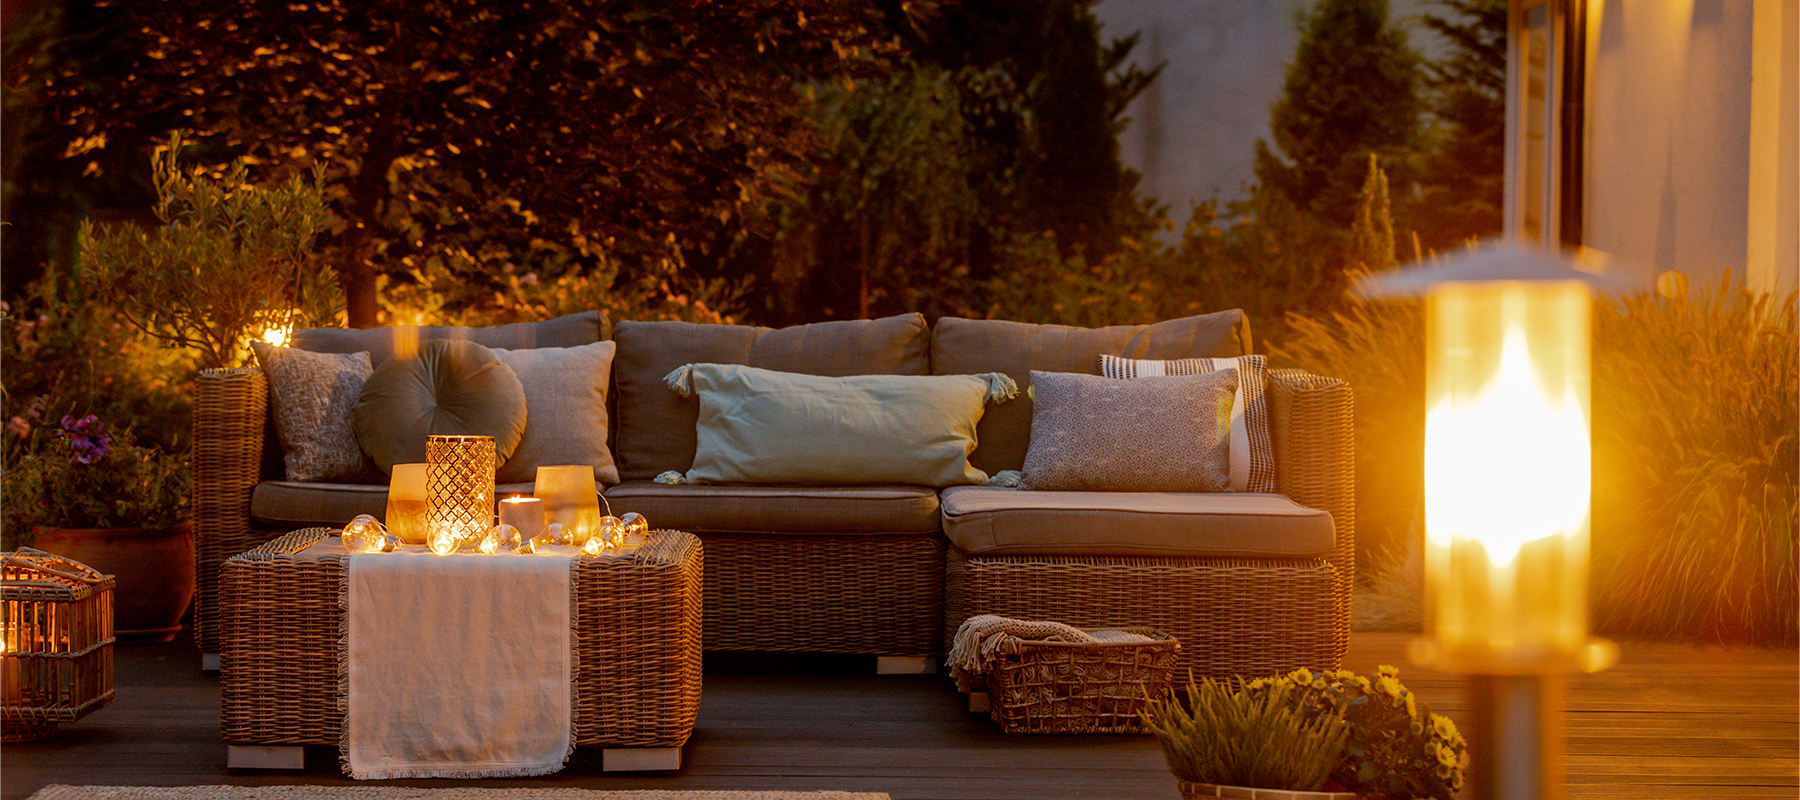 Make Your Backyard Aesthetically Pleasing to the Eyes with Outdoor Lights - US Electrical